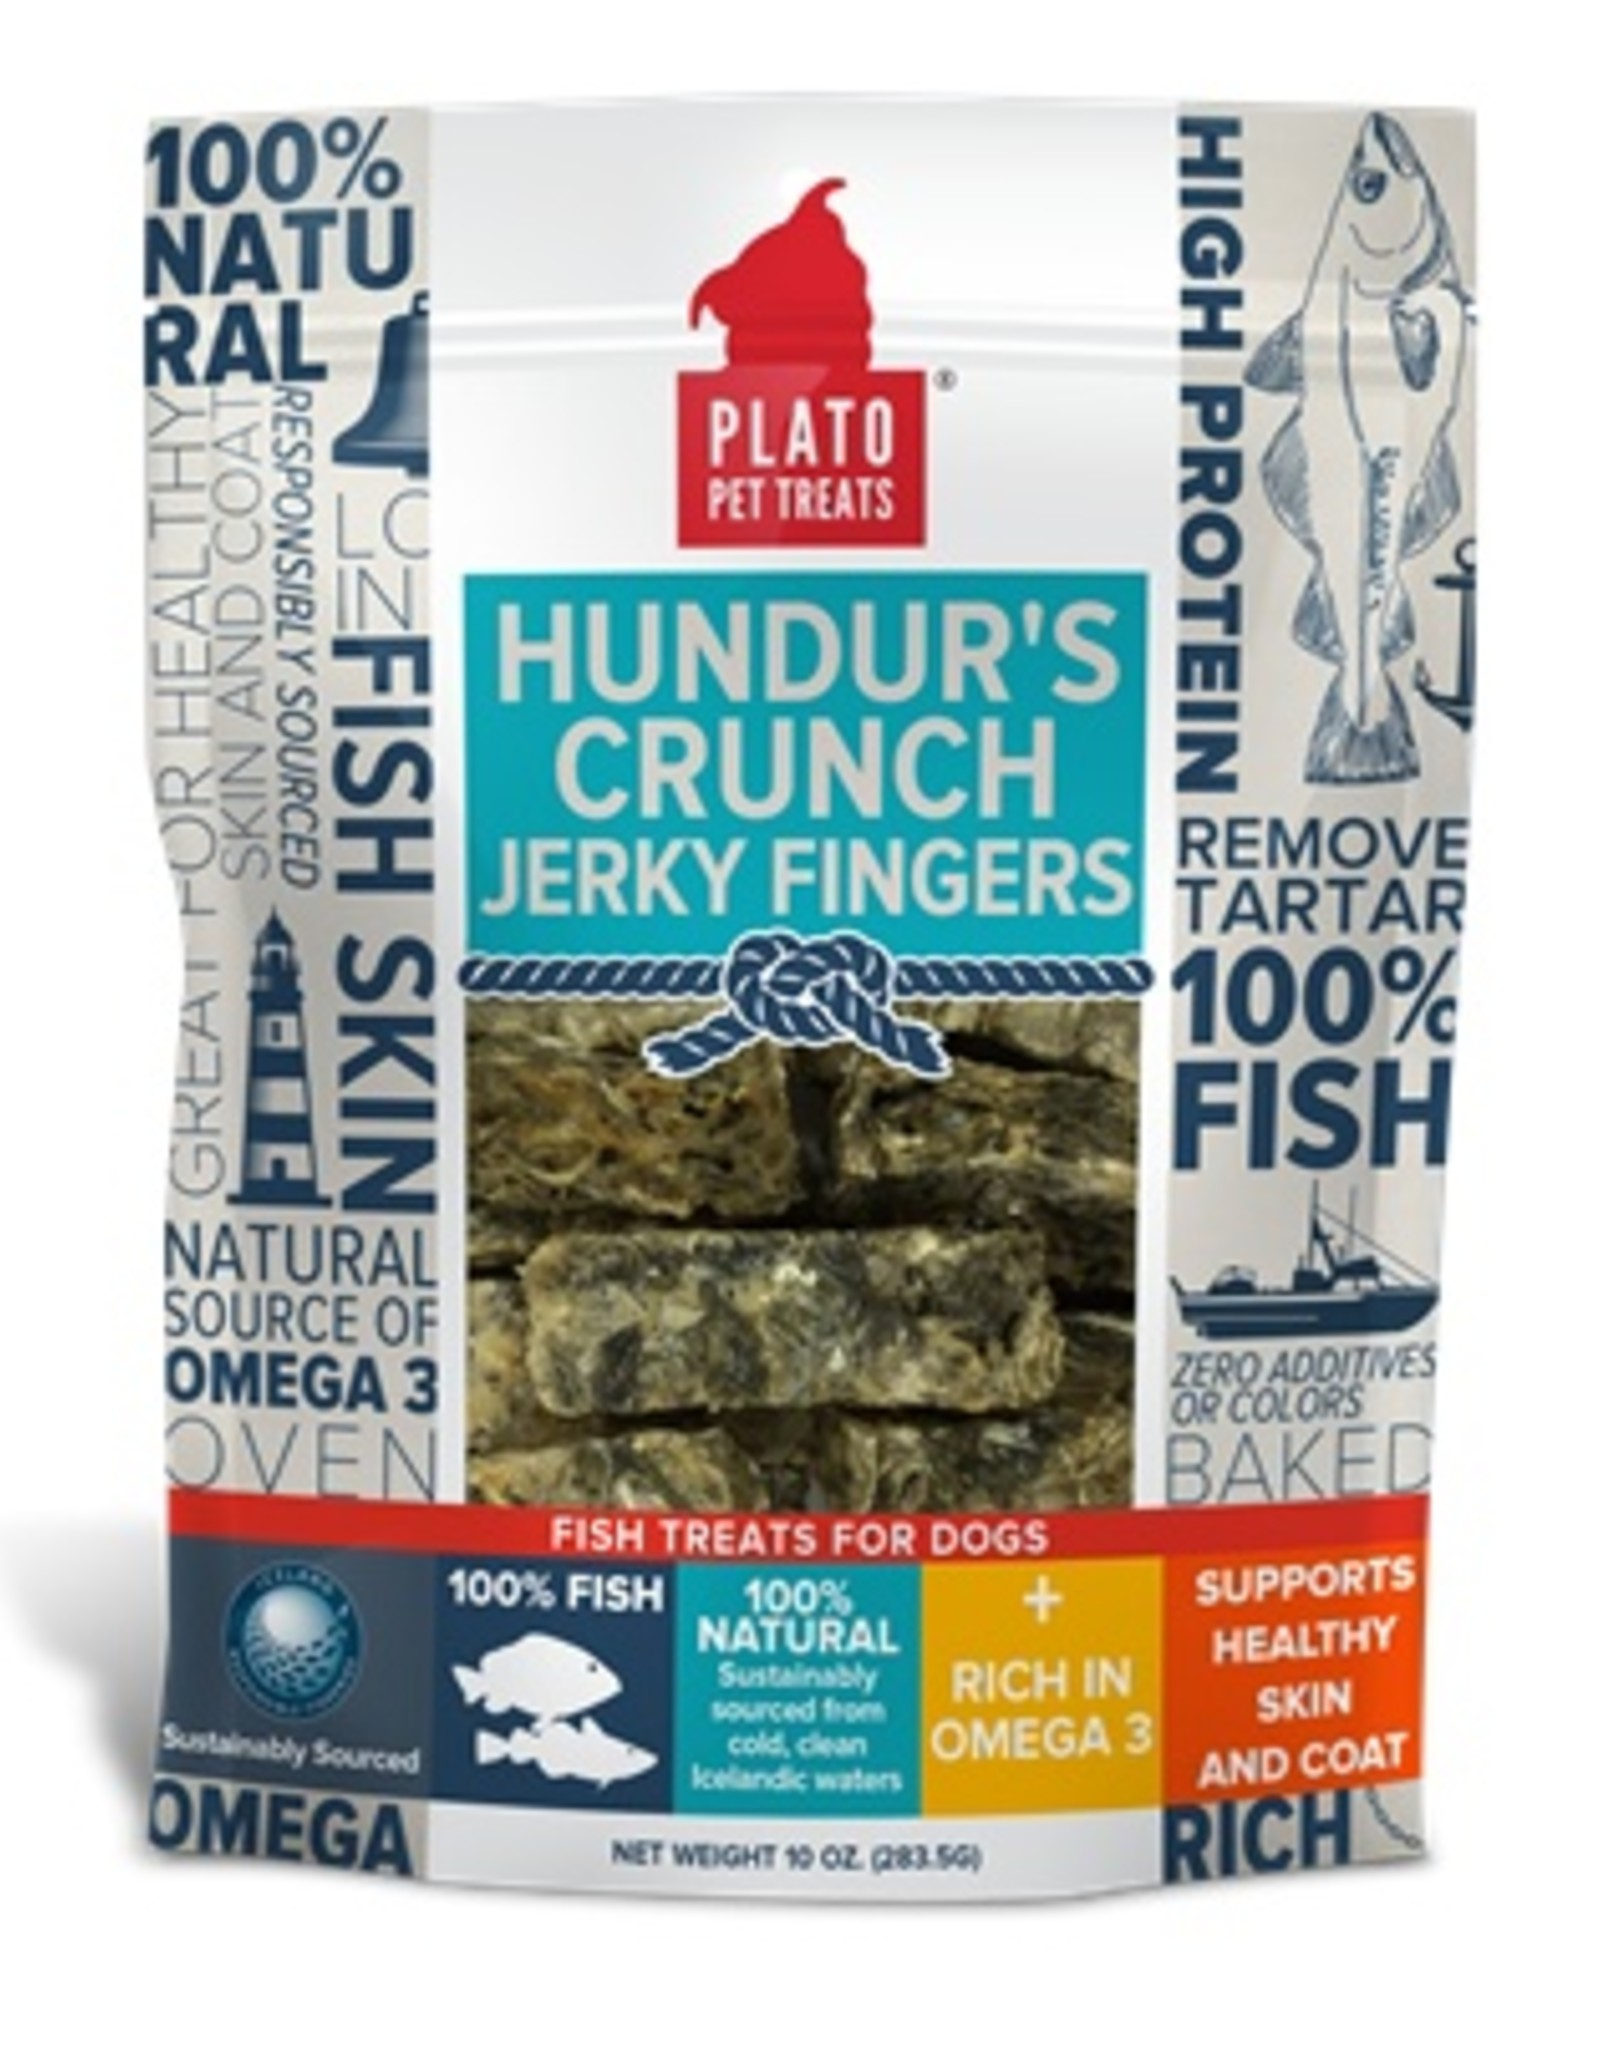 Plato Pet Treats Plato Hundur's Crunch Jerky Fingers